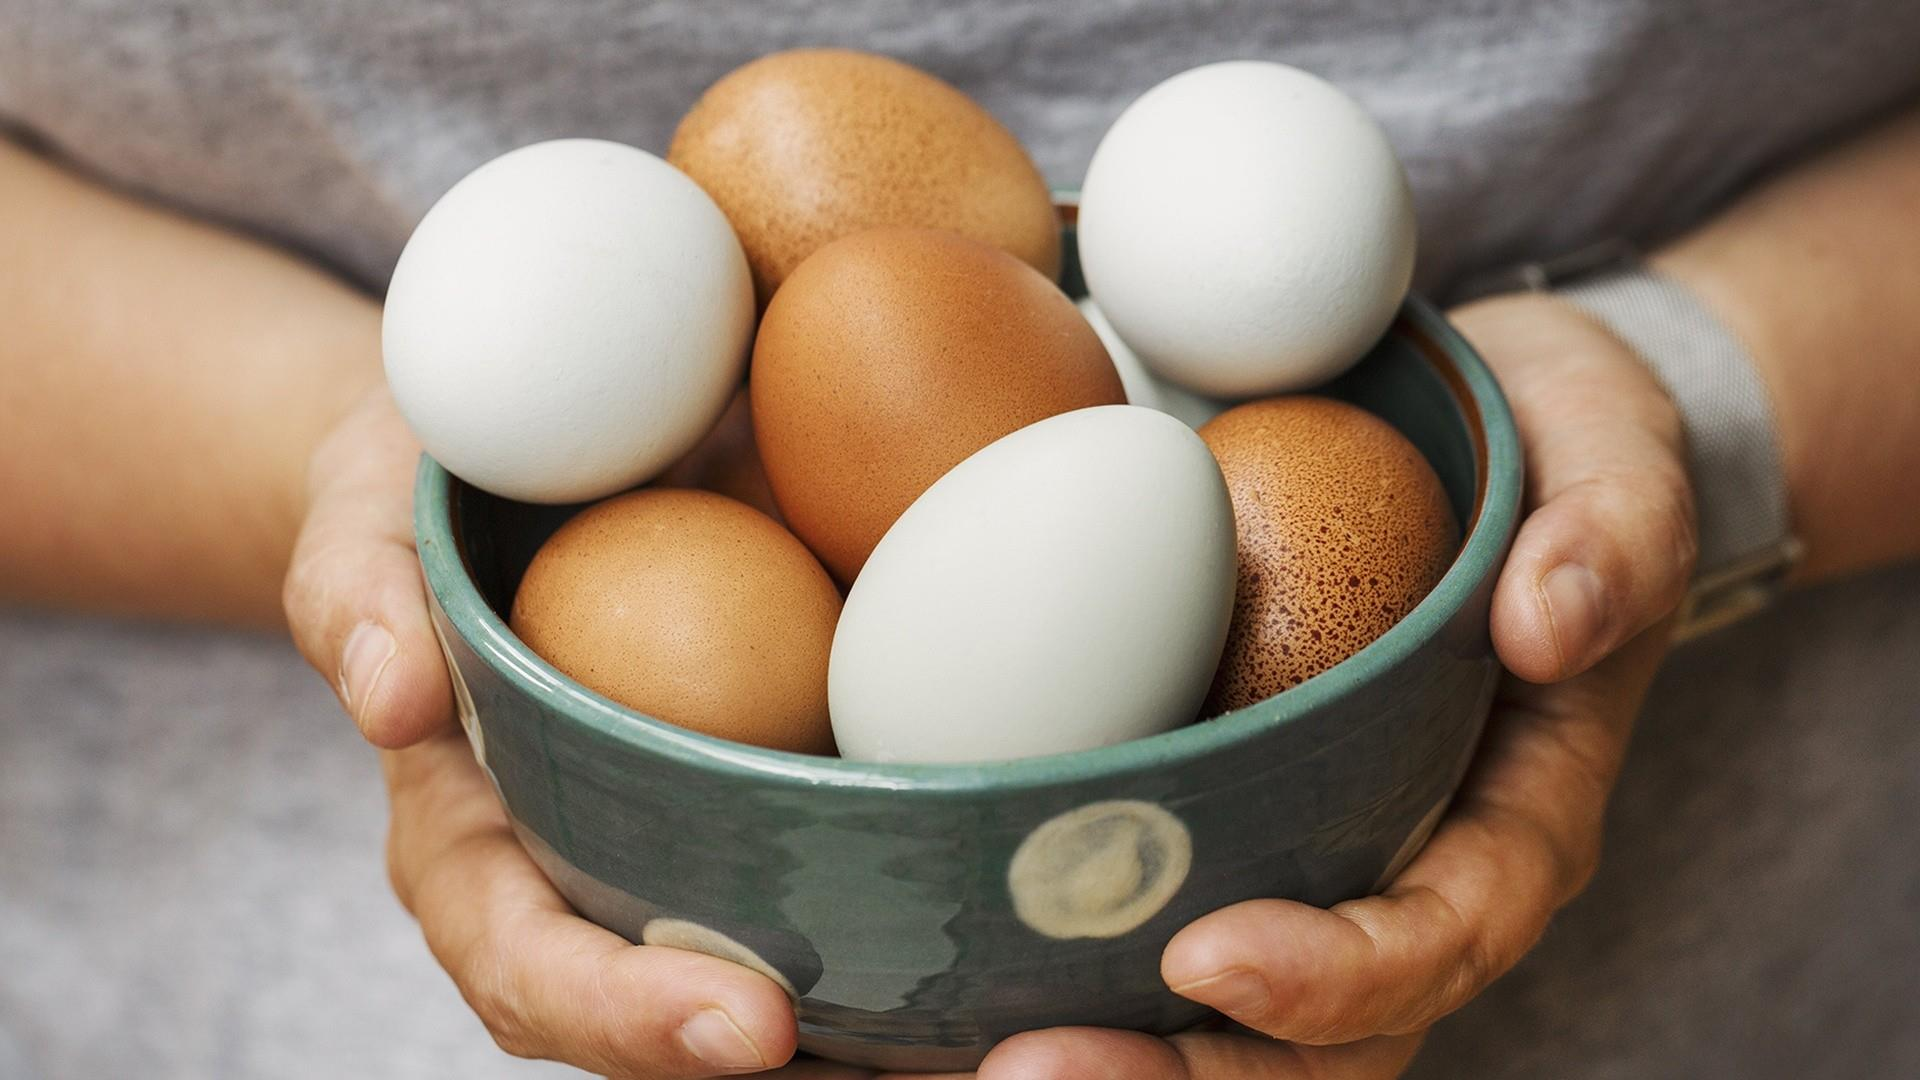 Cage free? Free range? What to know about eggs